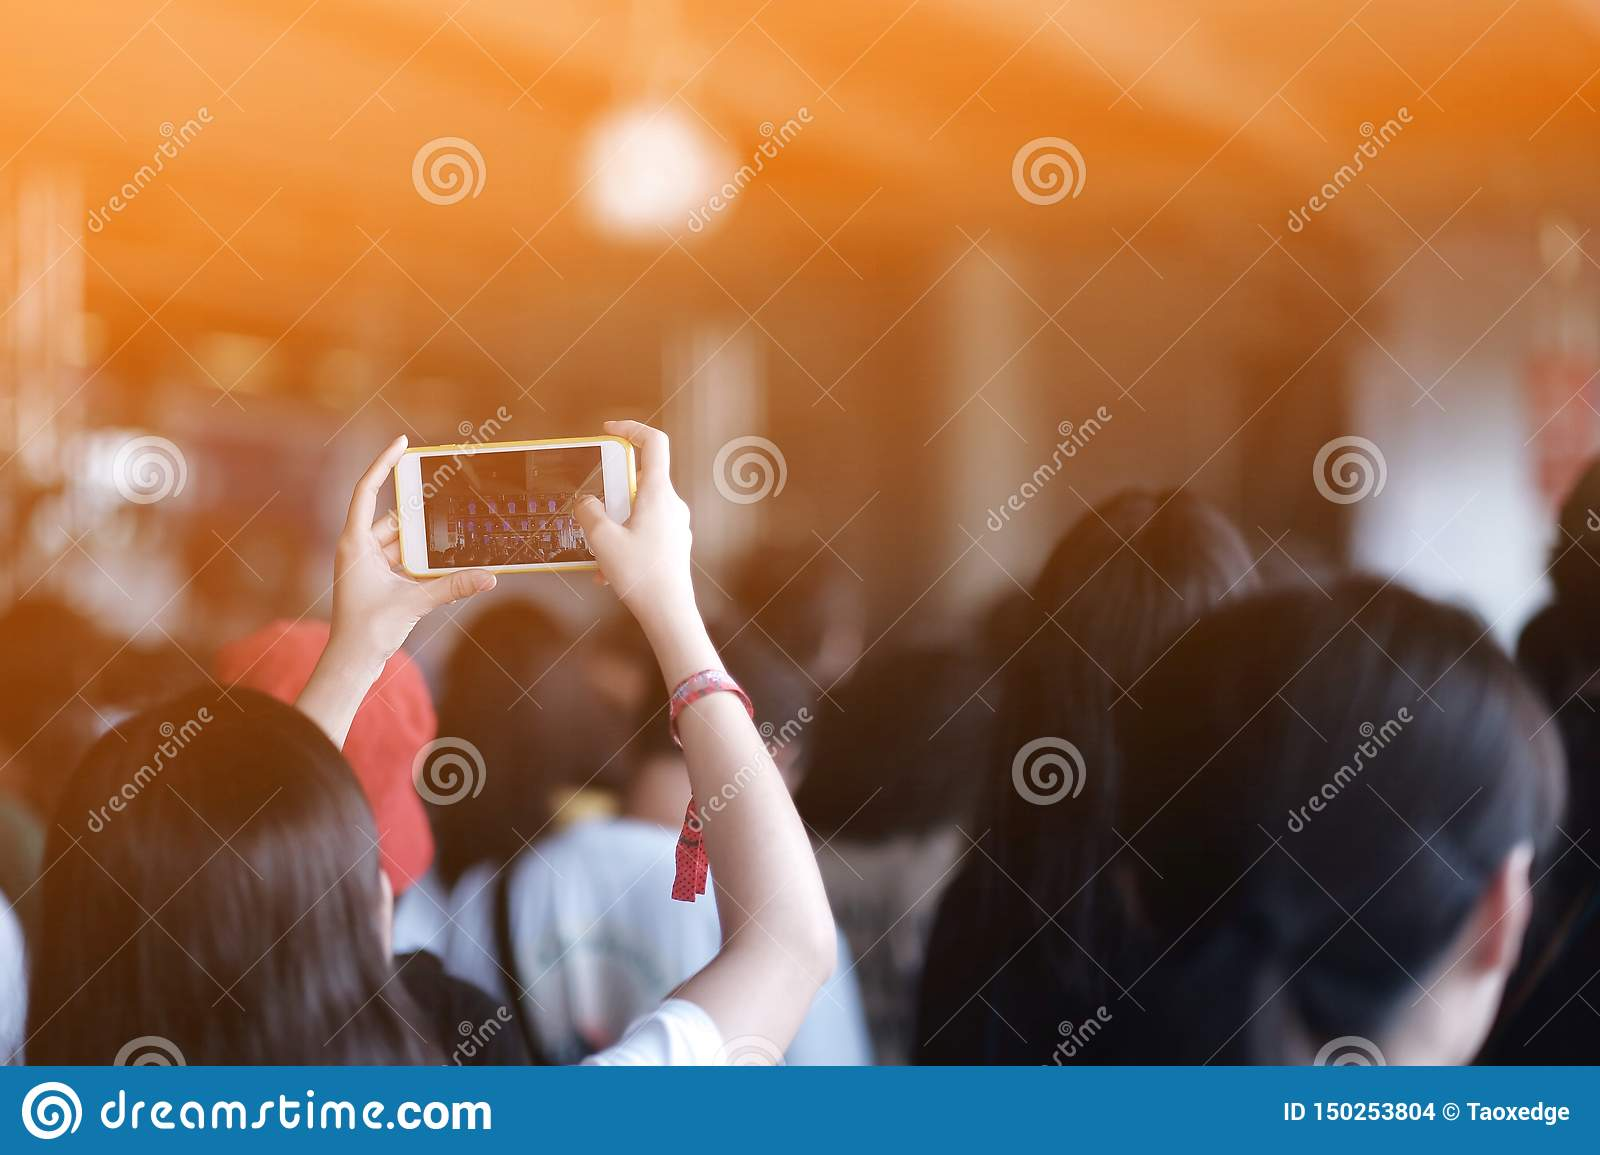 Girls use smartphones to take pictures at concerts